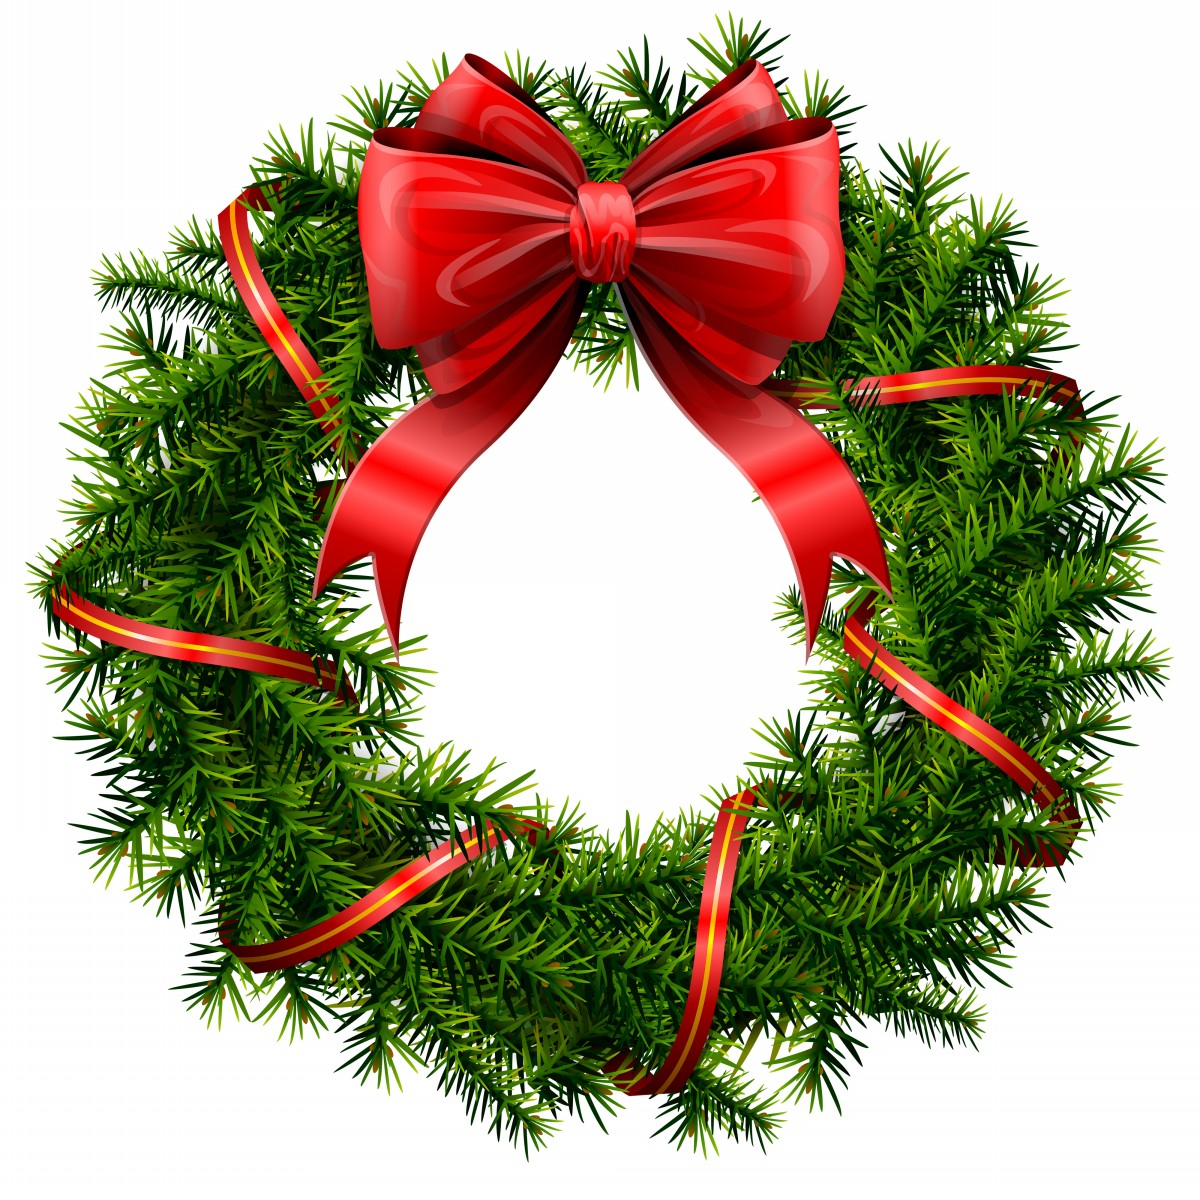 Wreath clipart transparent background Wreath Clipart wreath collection With